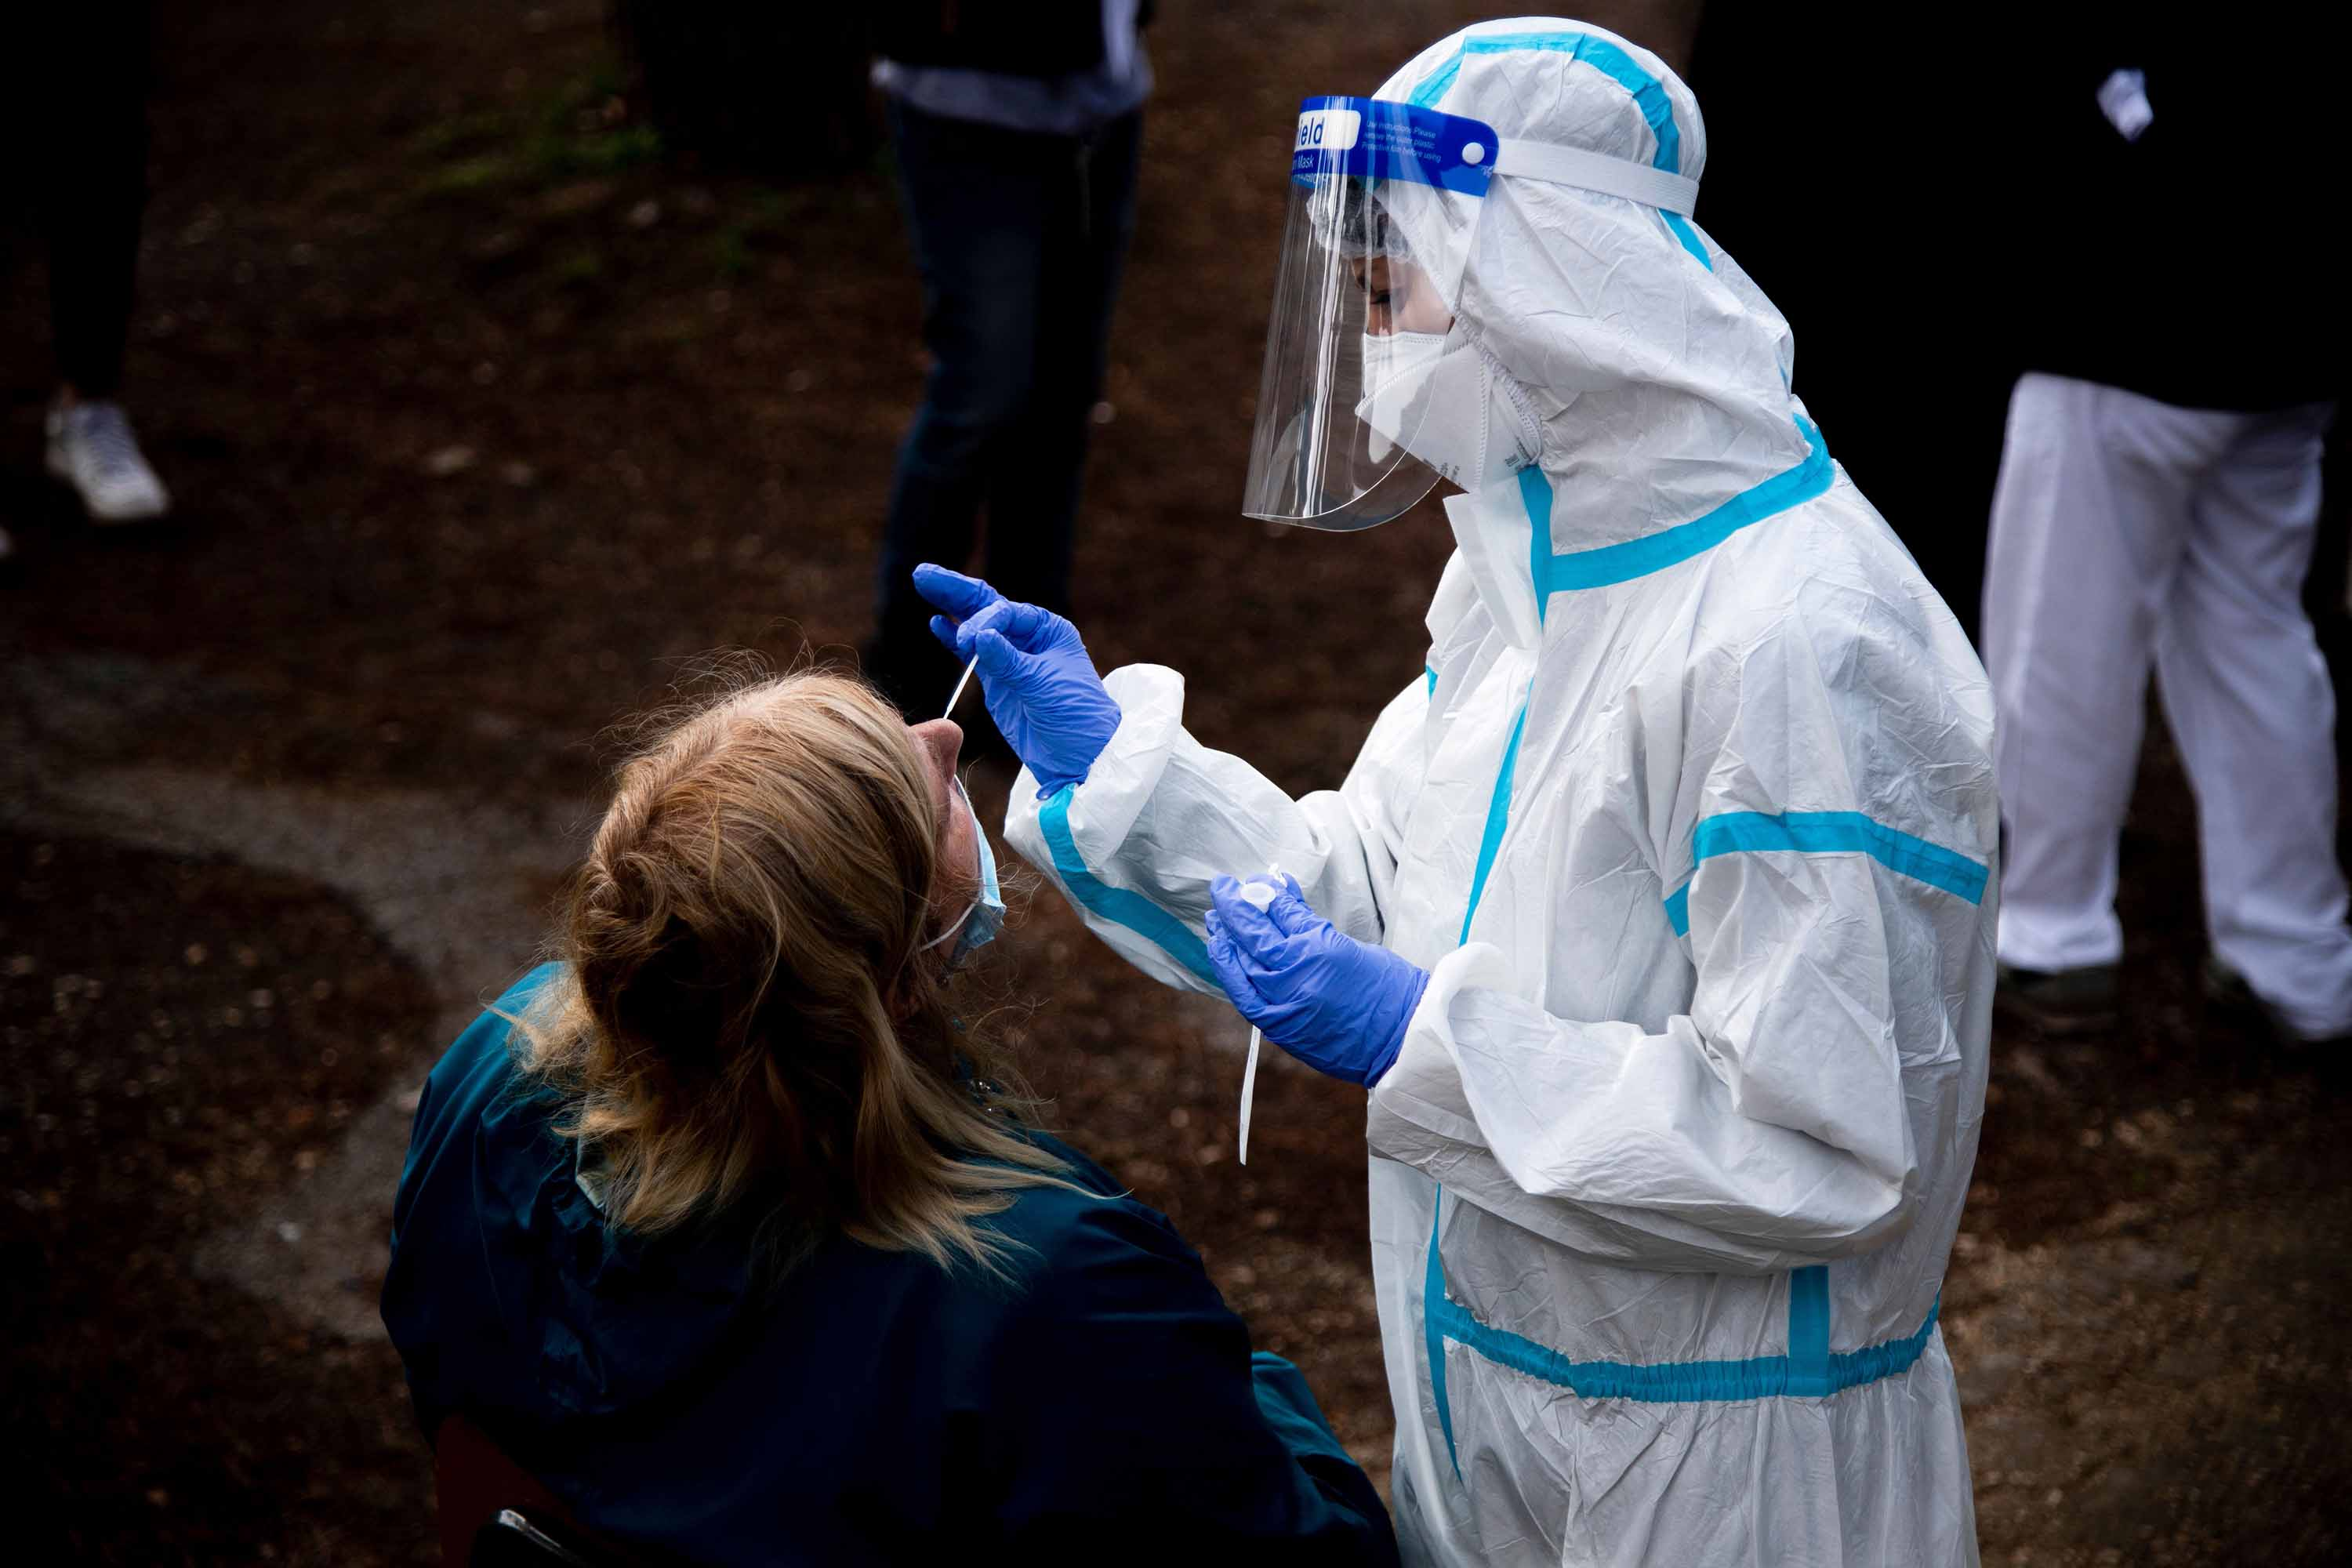 A woman undergoes a swab test for coronavirus on October 12 at a drive-thru testing site at a hospital in Rome.